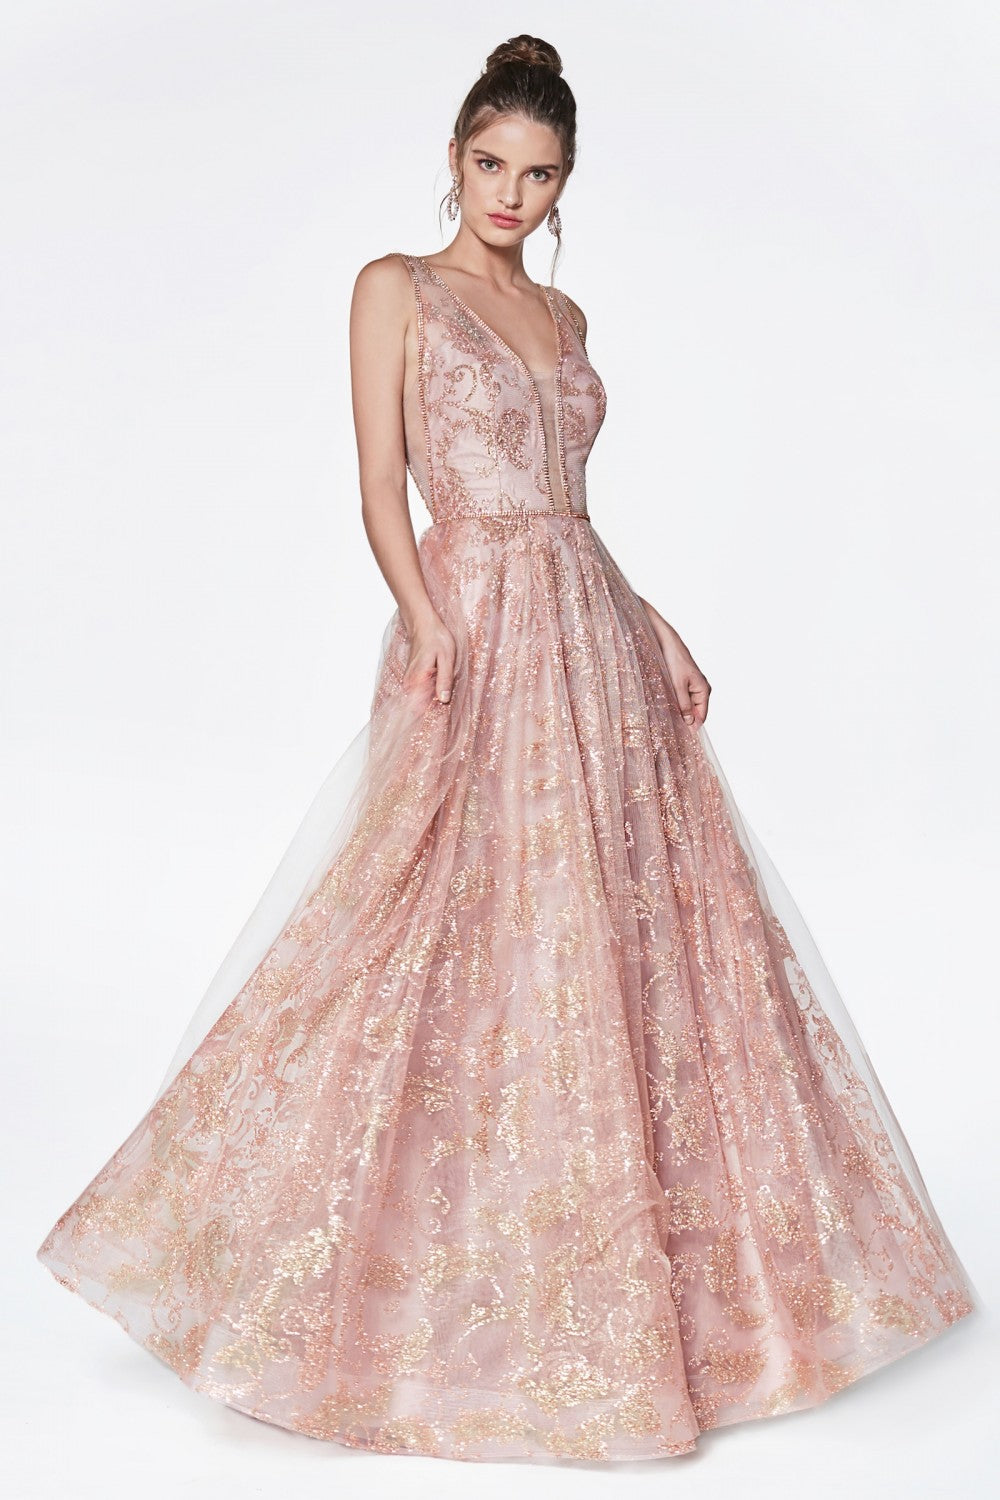 Glitter Print Ball Gown With Deep Plung Neckline And Illusion Sheer Sides